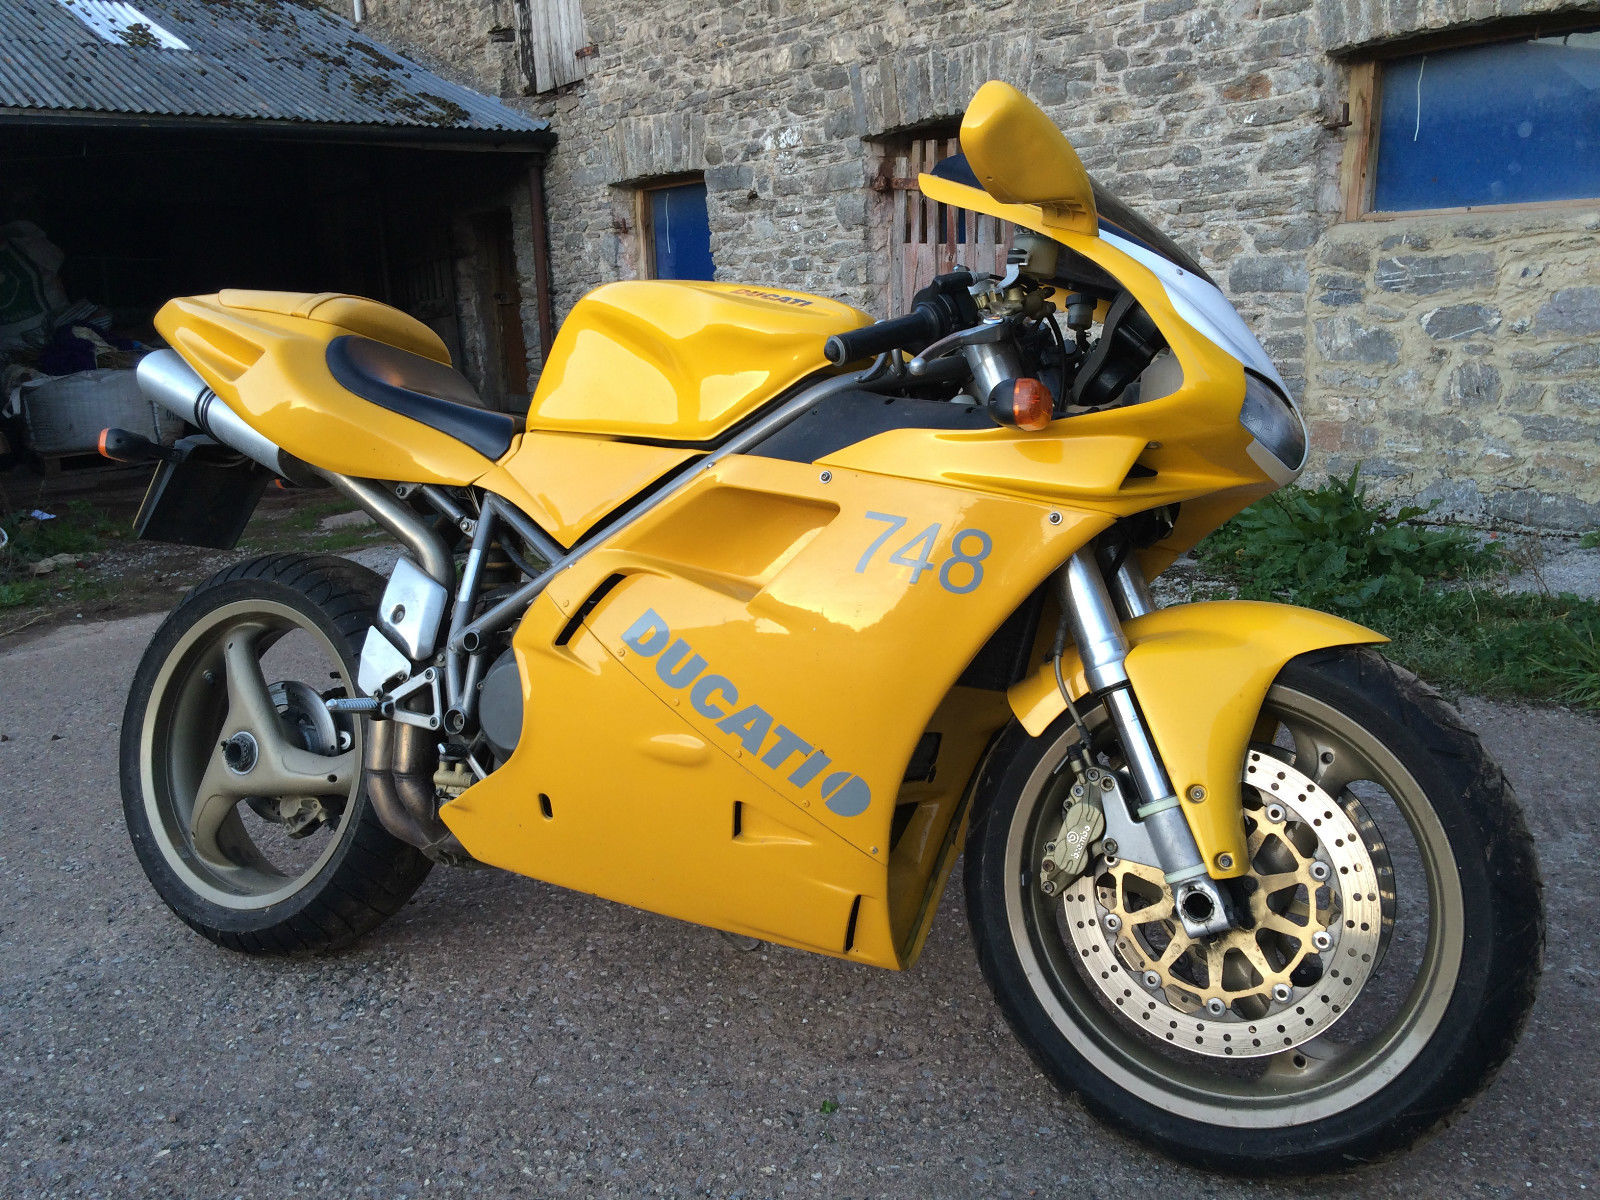 2001 ducati 748 biposto yellow clean tidy bike. Black Bedroom Furniture Sets. Home Design Ideas